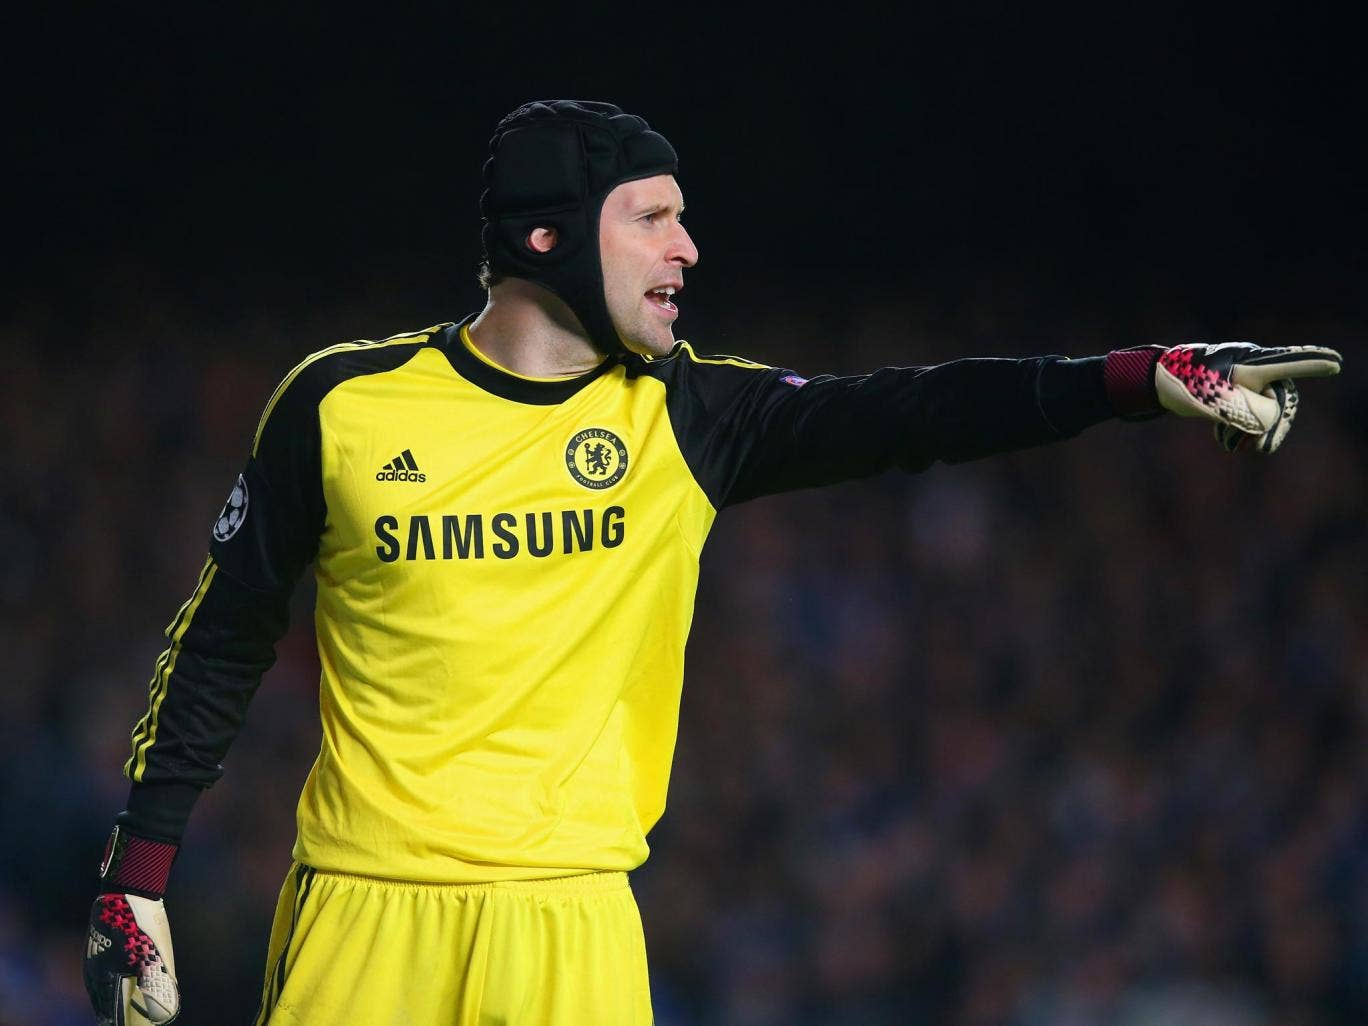 Petr Cech is keen to see how Liverpool deal with the pressure of a Premier League title challenge